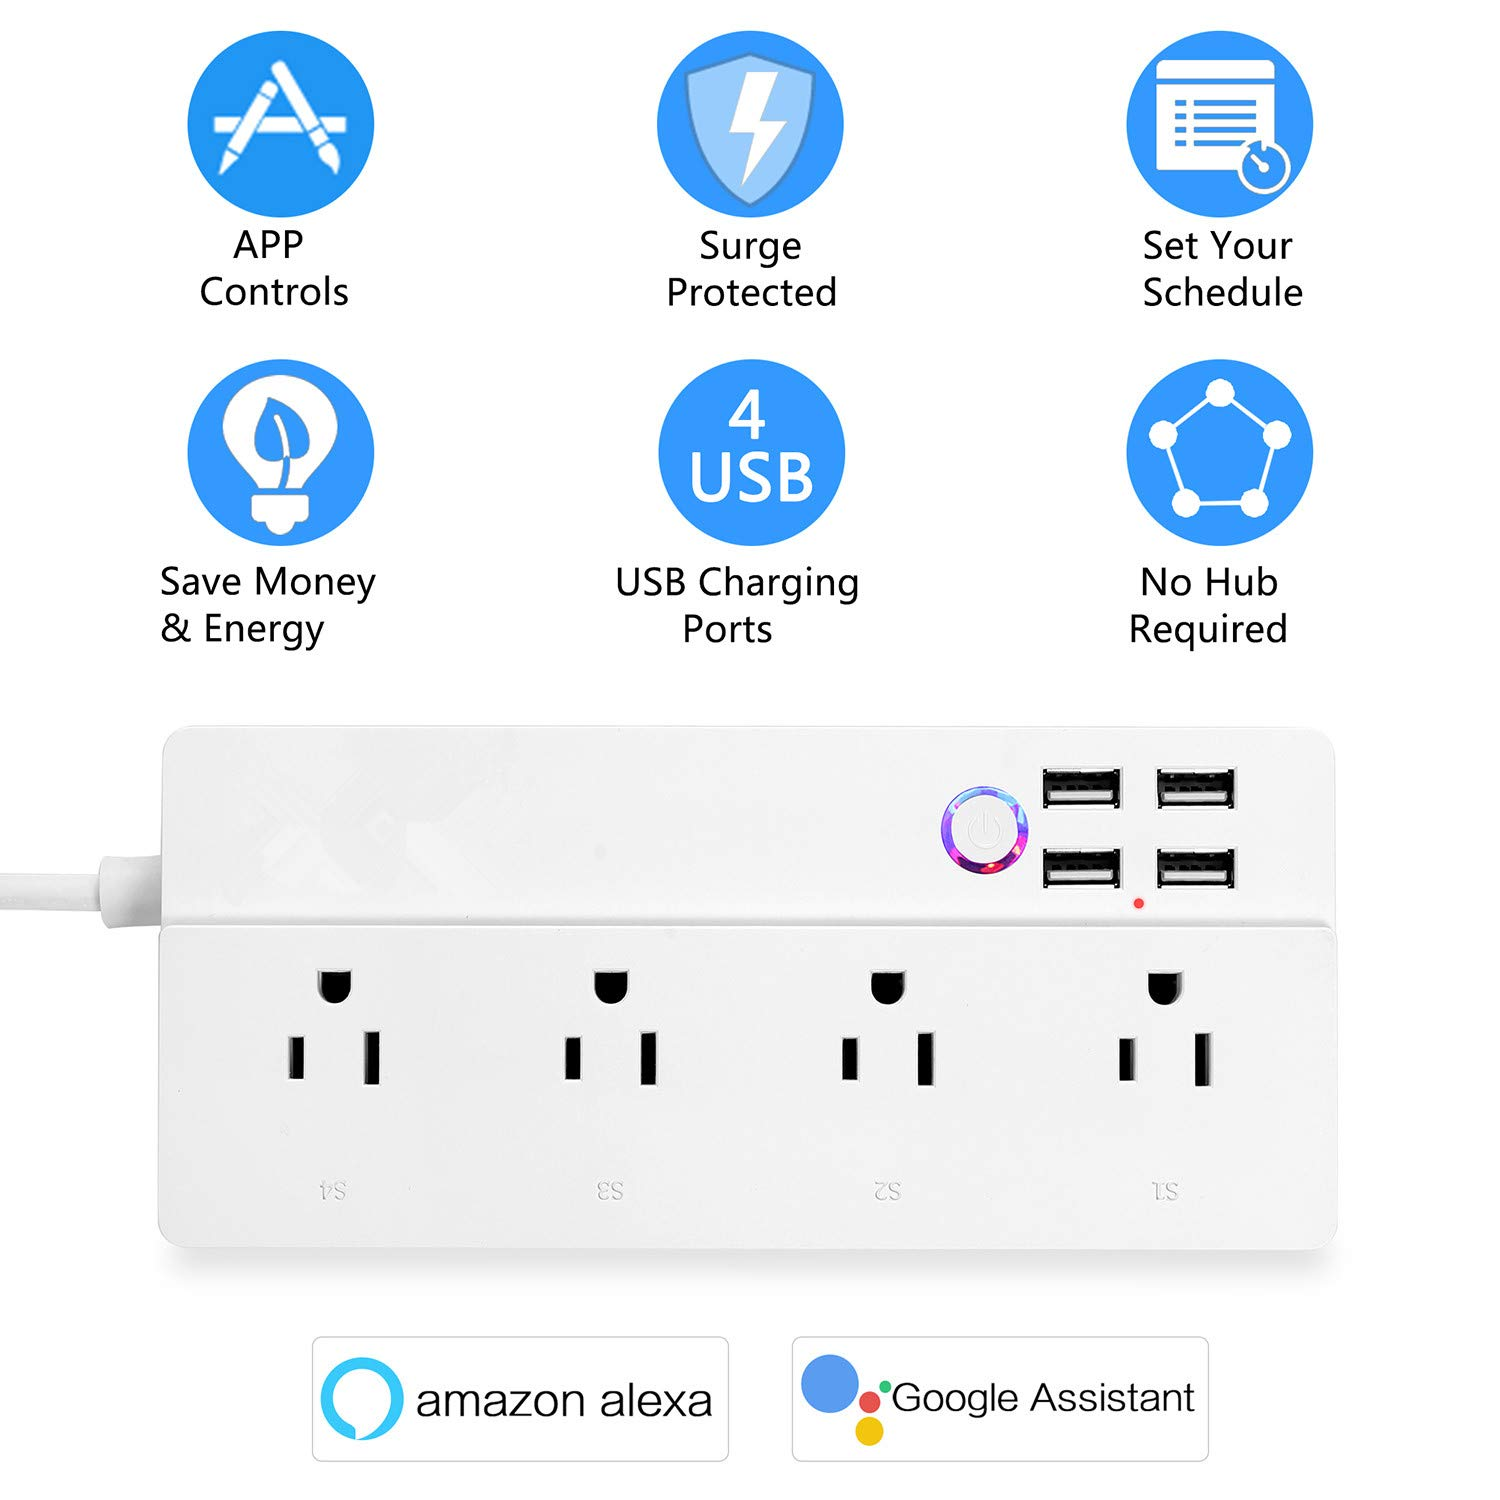 Individual Control No Hub Smart Power Strip Wifi Surge Protector Voice Control with Alexa /& Google Home 4 AC Outlets 4 USB Port with 6-Foot Cord App Control Appliances Timing Schedule